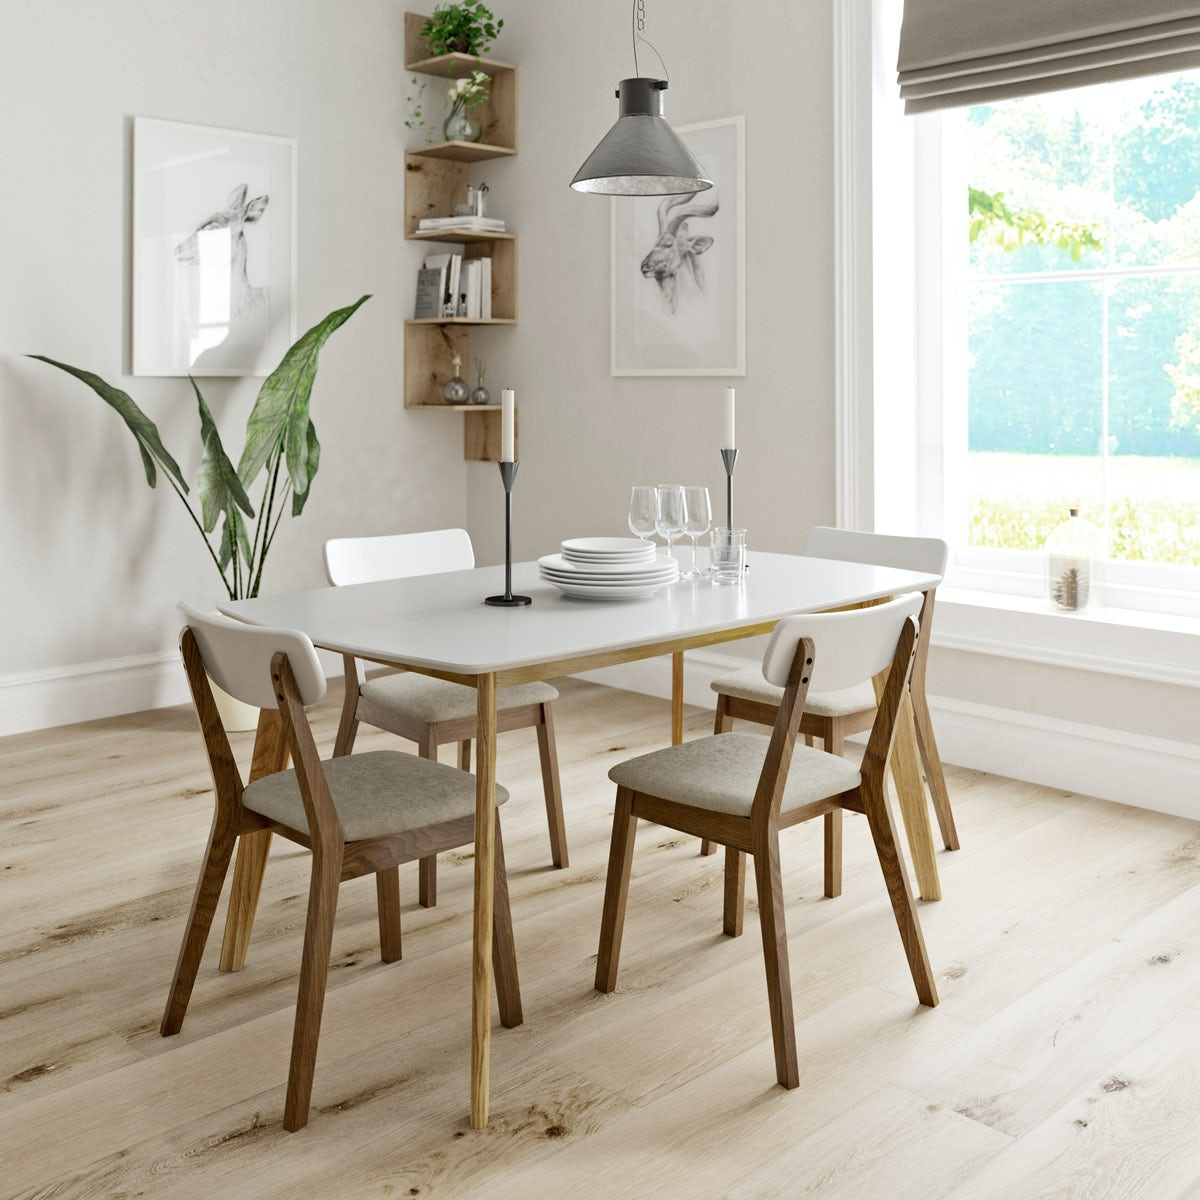 Archer dining table with 4 x Archer dining chairs